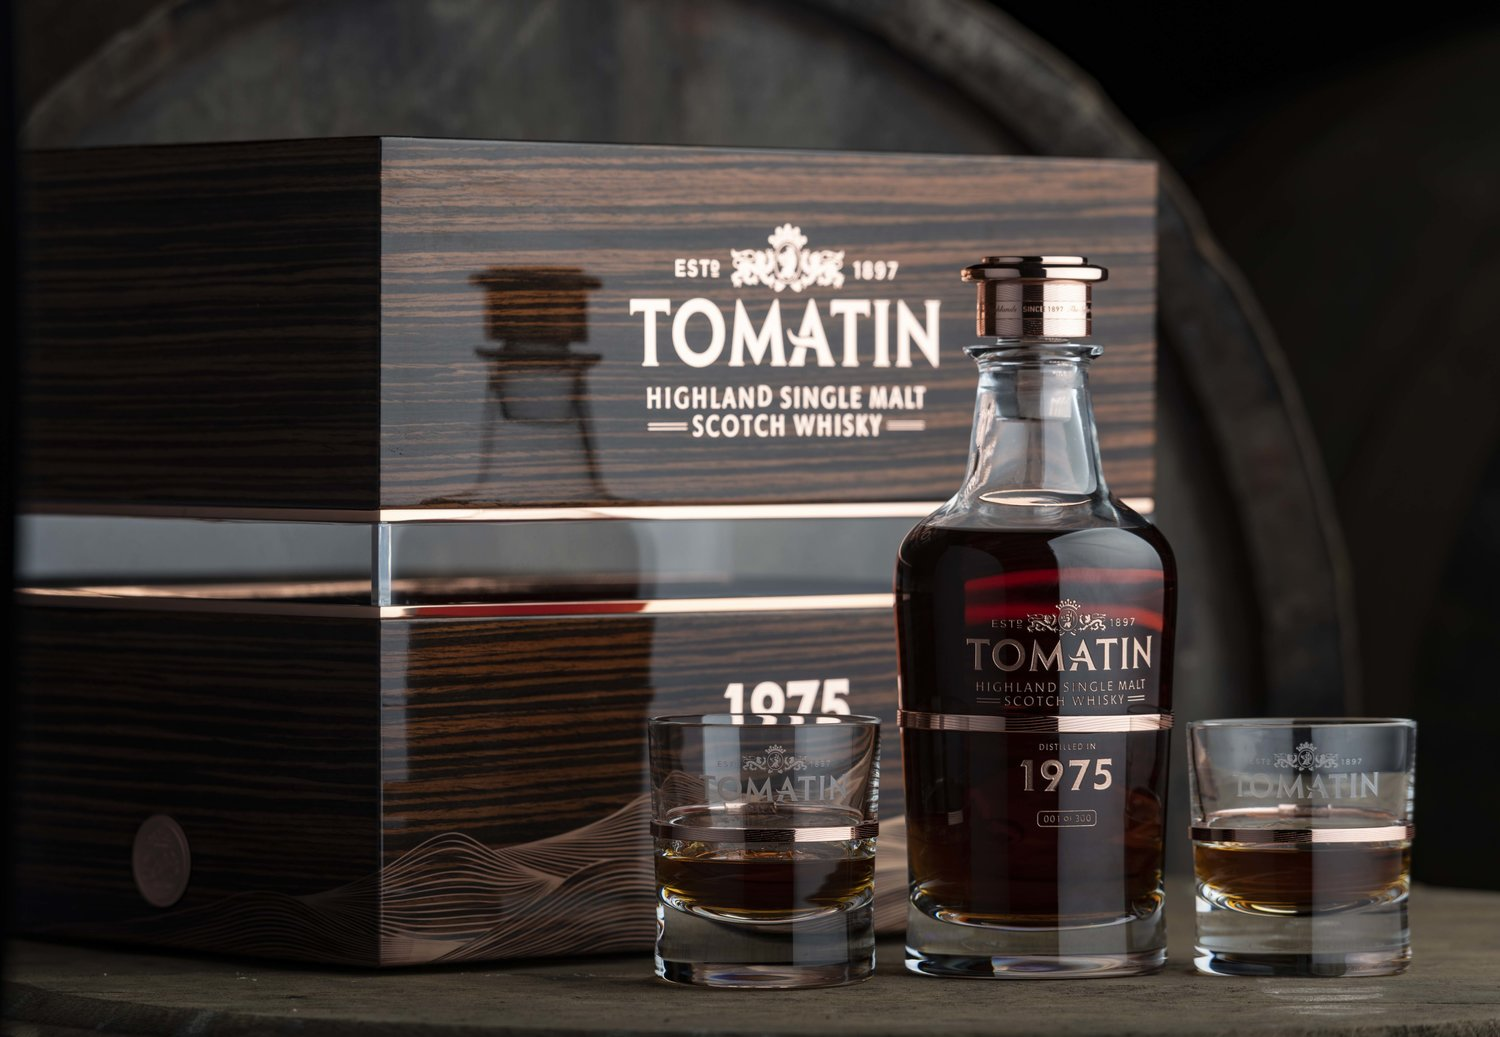 Tomatin's 1975 edition